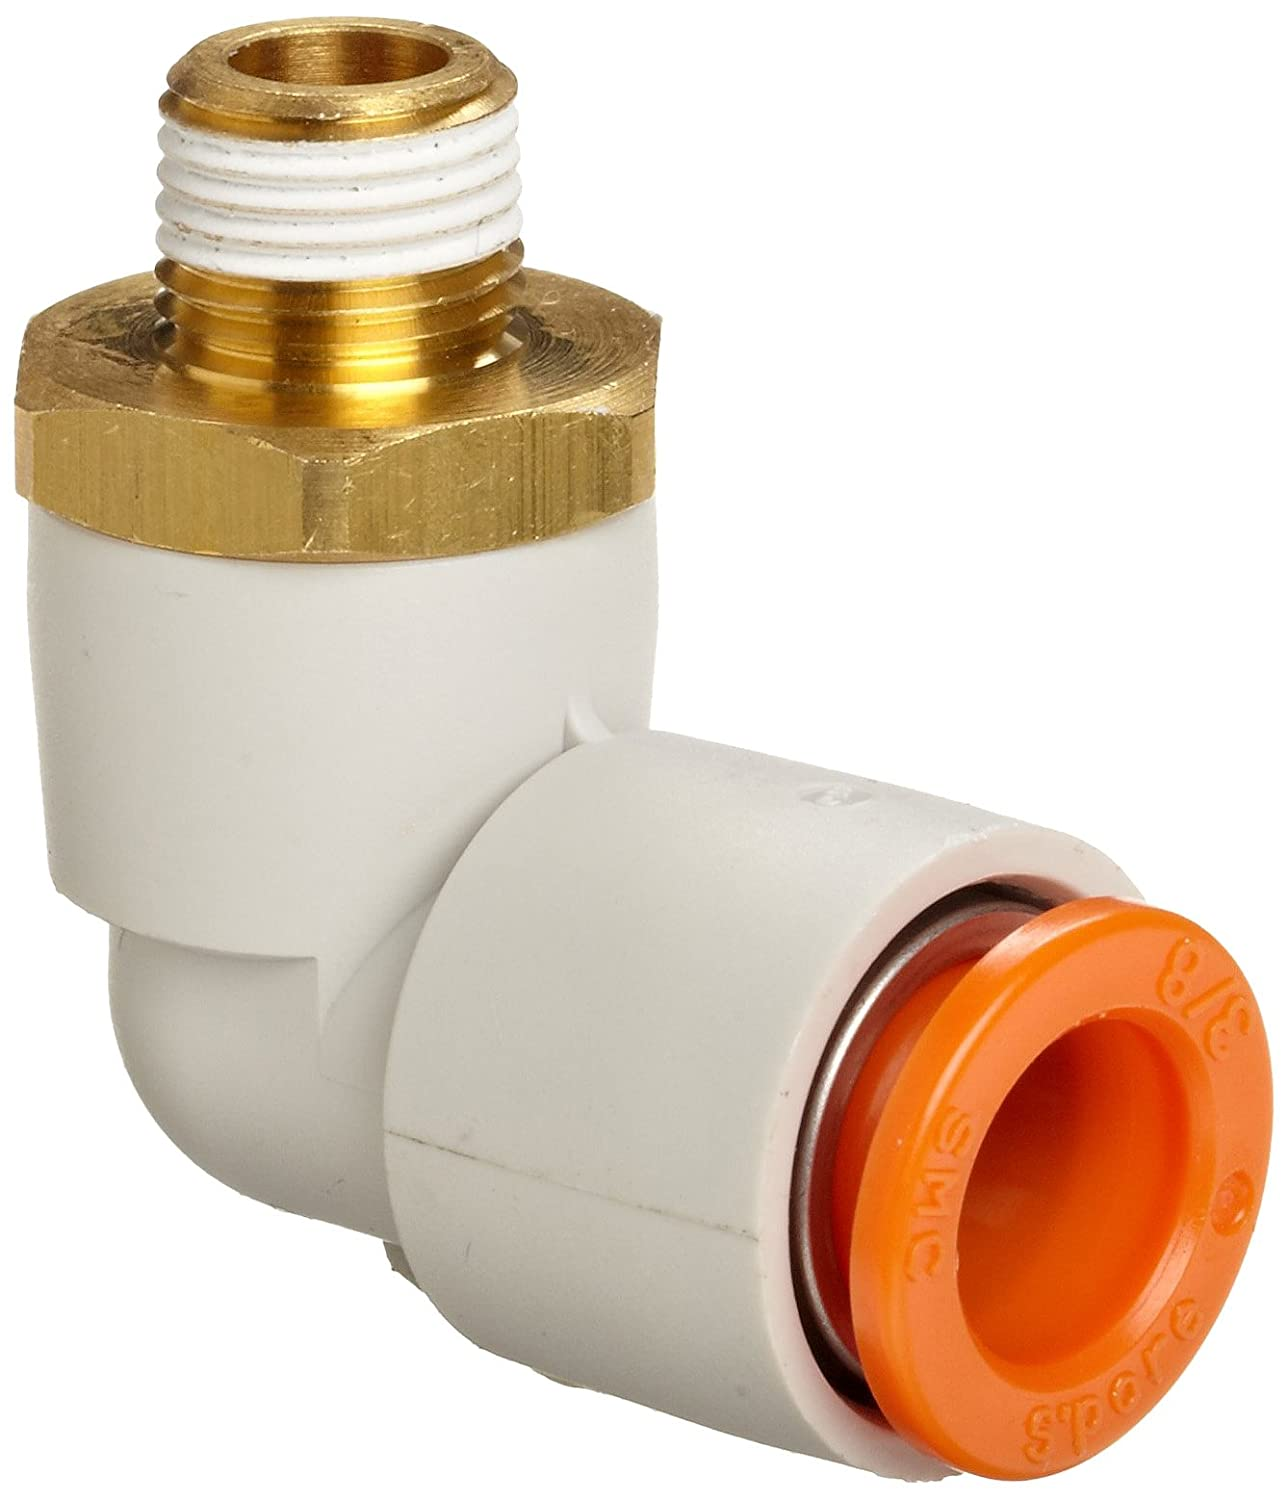 USA Sealing Push to Connect Tube Fitting Polybutylene Plastic 1//4 Tube OD x 1//8 BSPT Male Male Straight